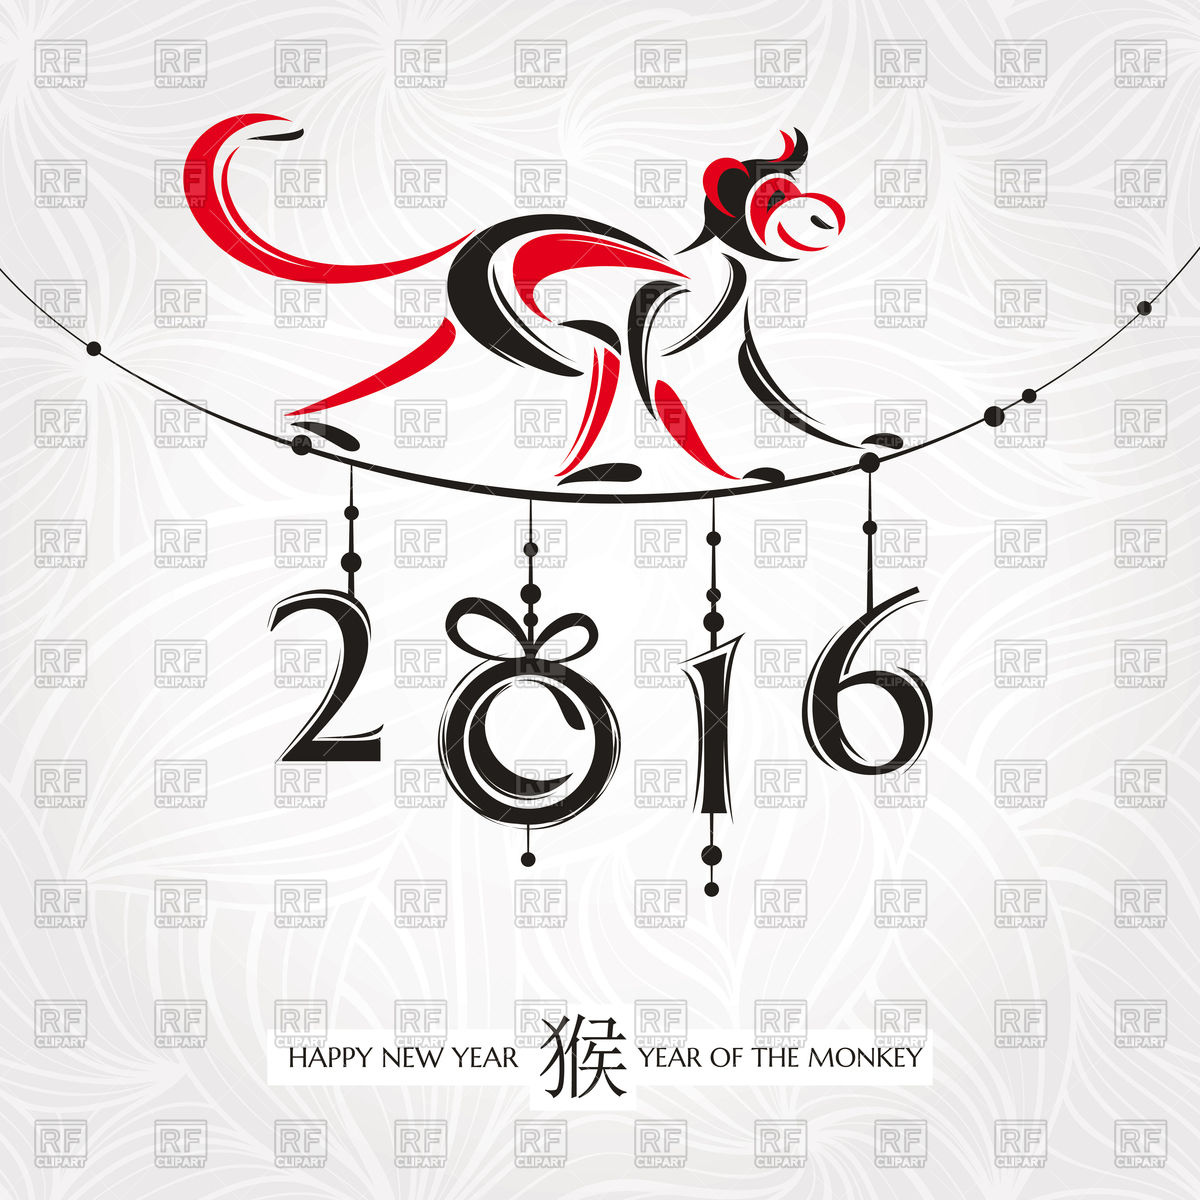 Year greetings clipart - Clipground